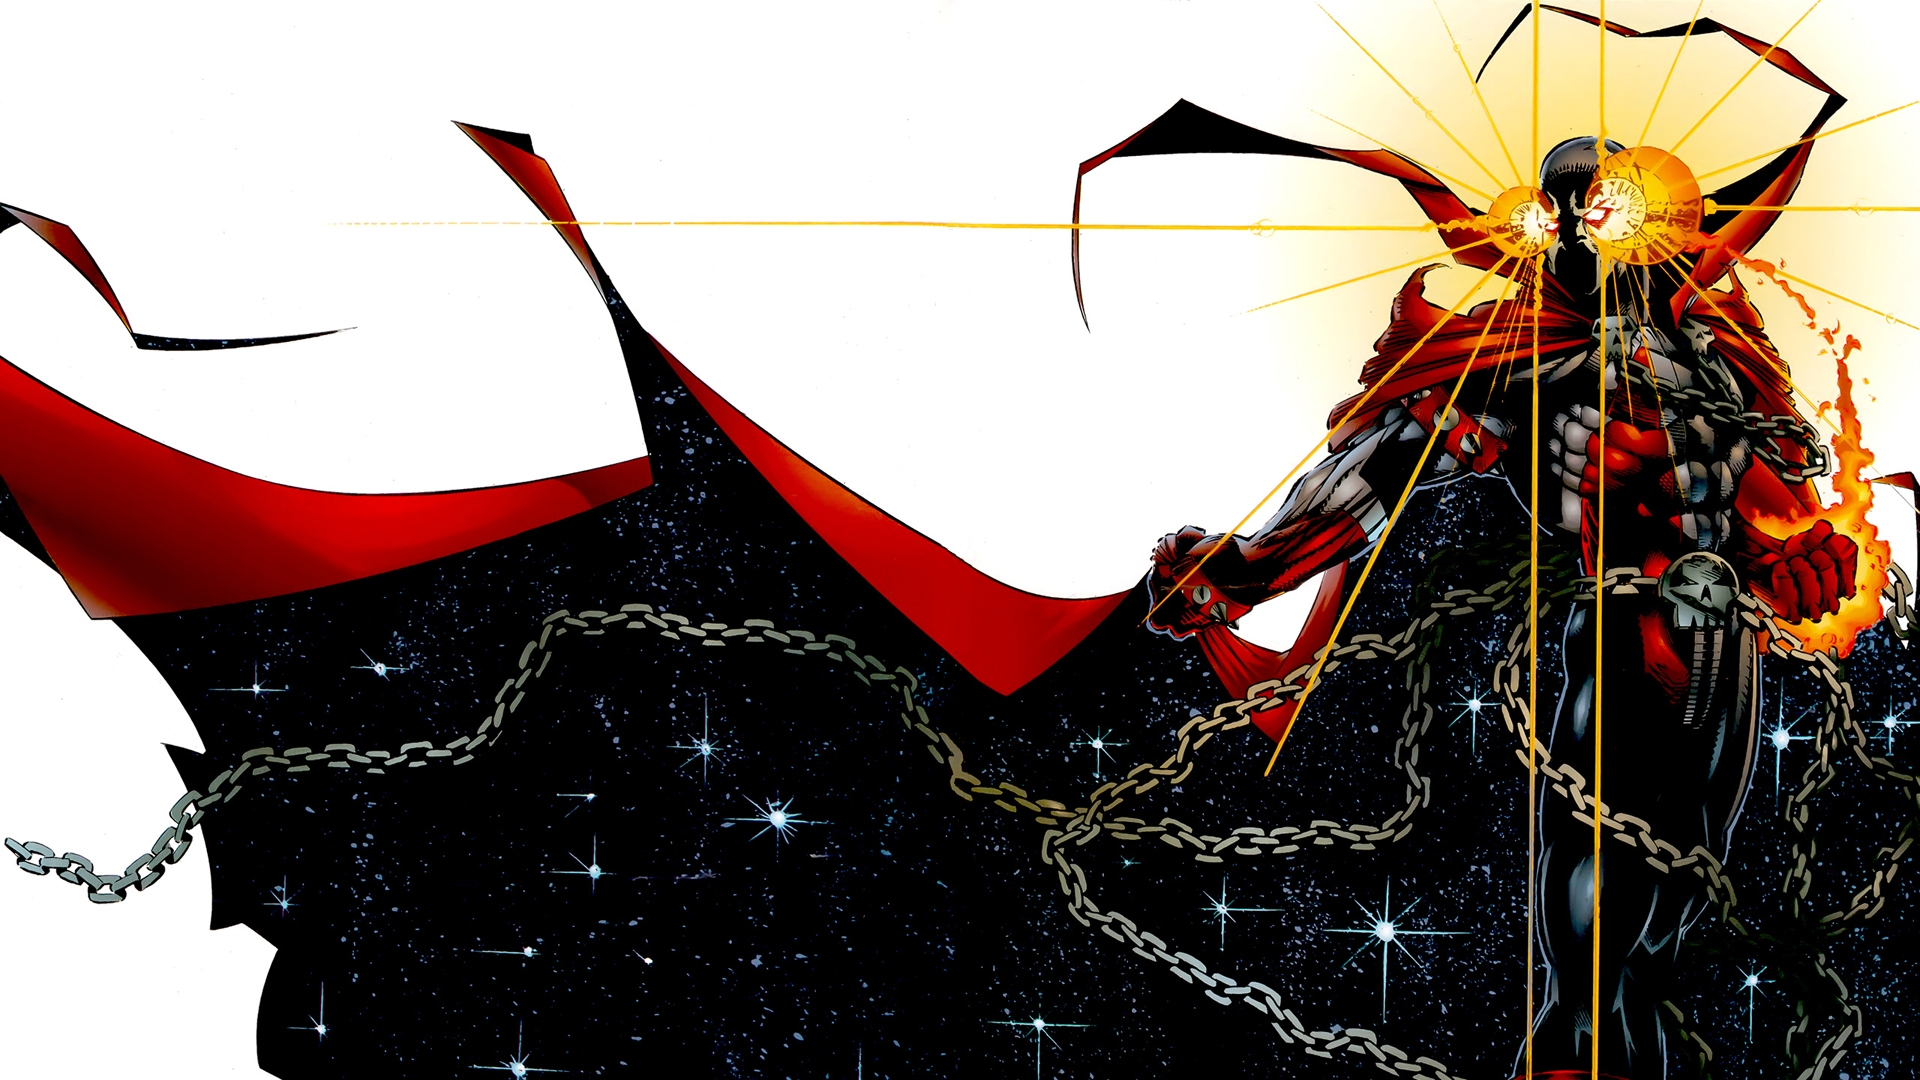 spawn wallpapers 1920x1080 - photo #40